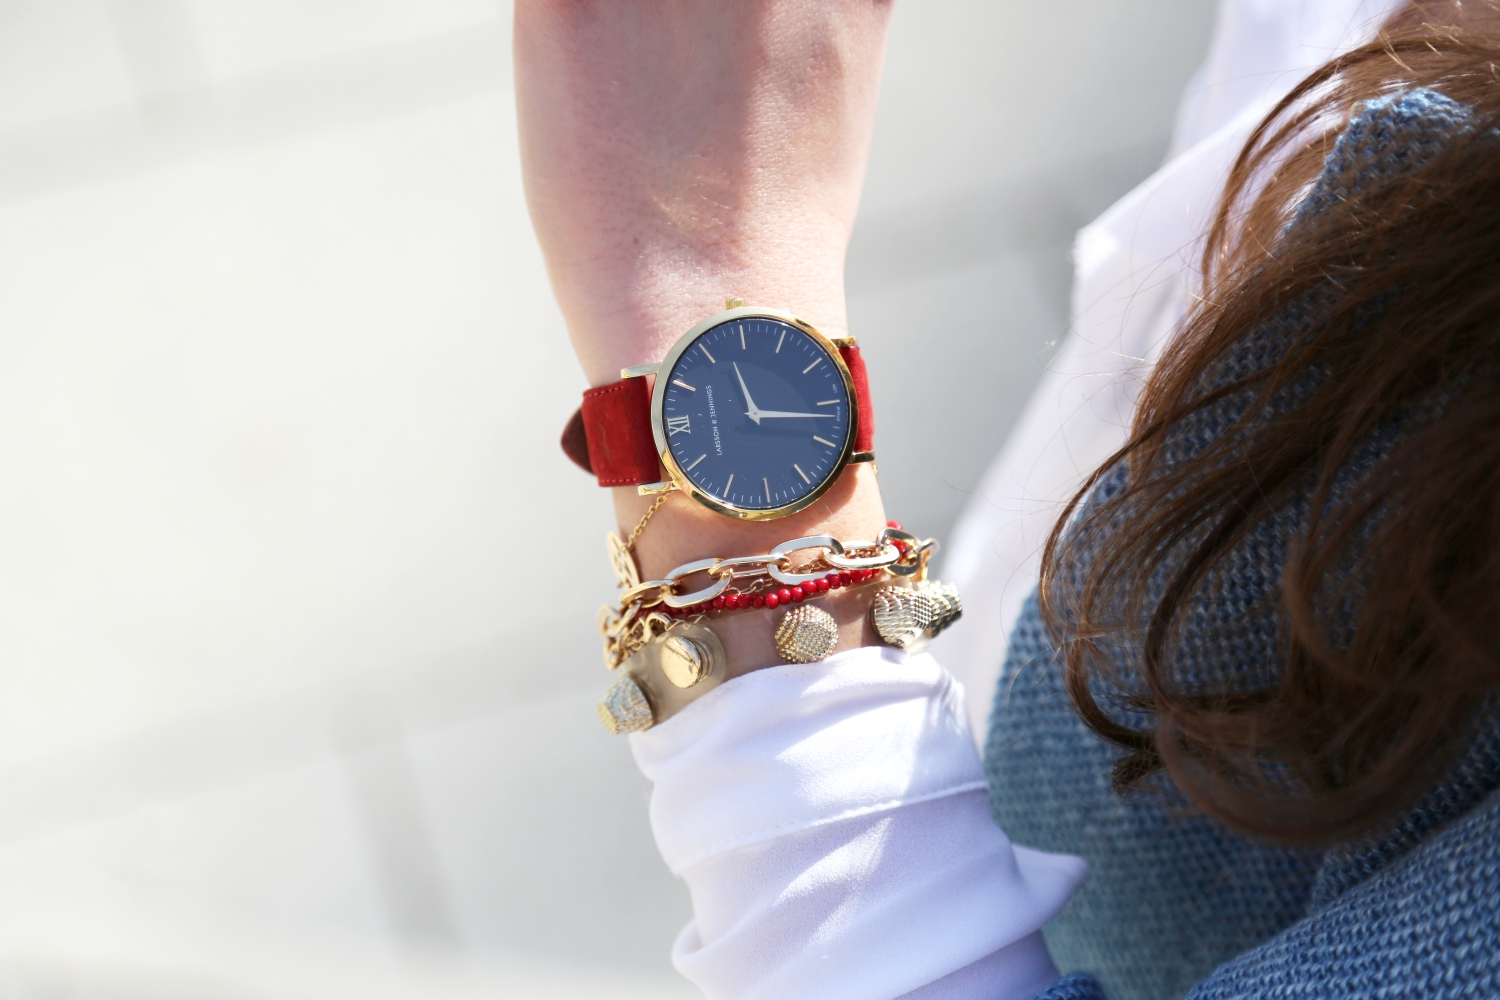 outfit-details-lasson&jennings-watch-red-armcandy